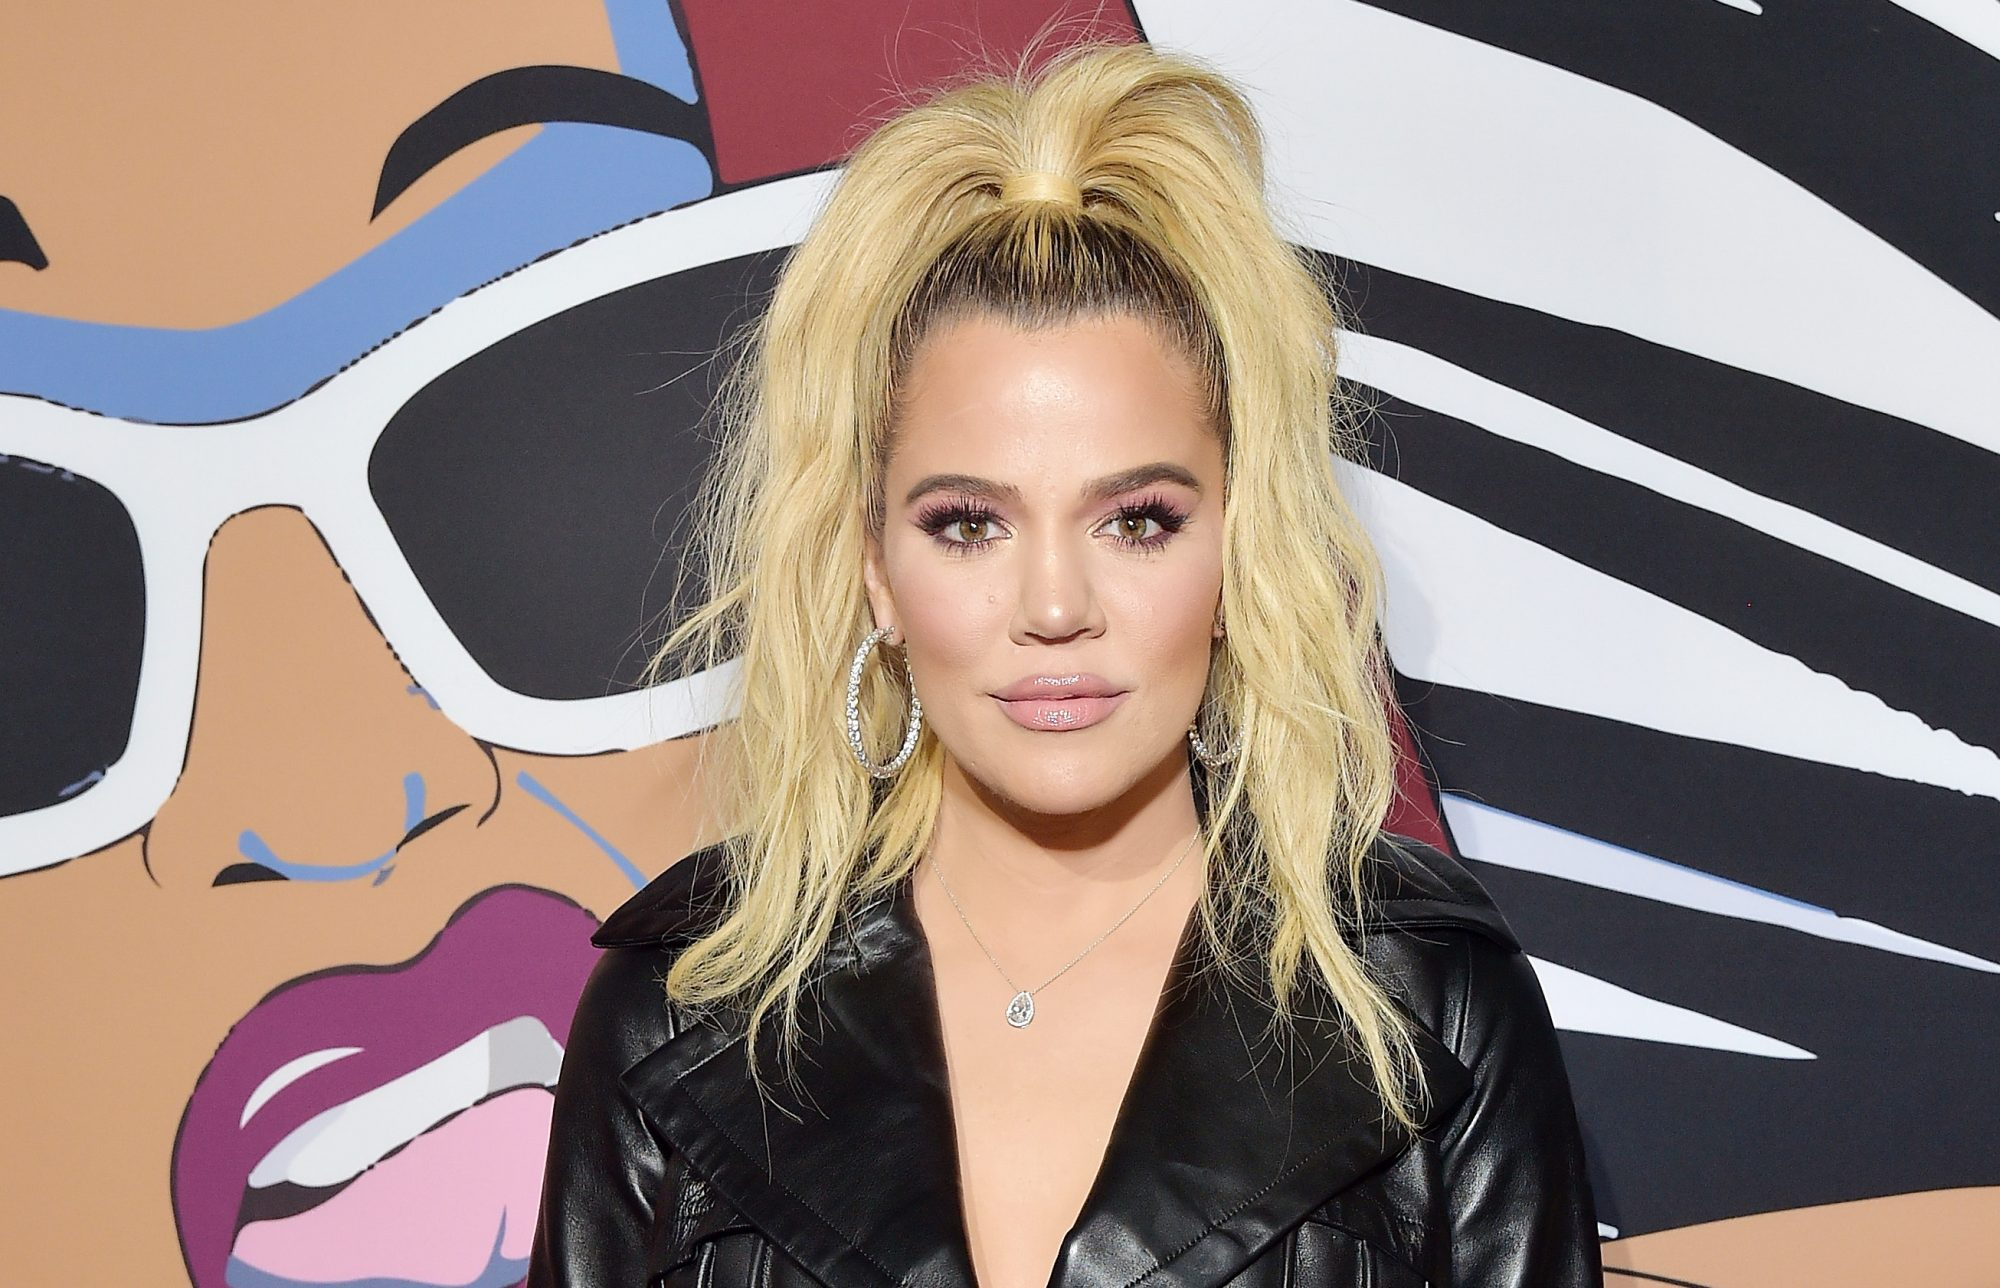 Khloé Kardashian's New Hair Color Is So Blonde It's Almost White